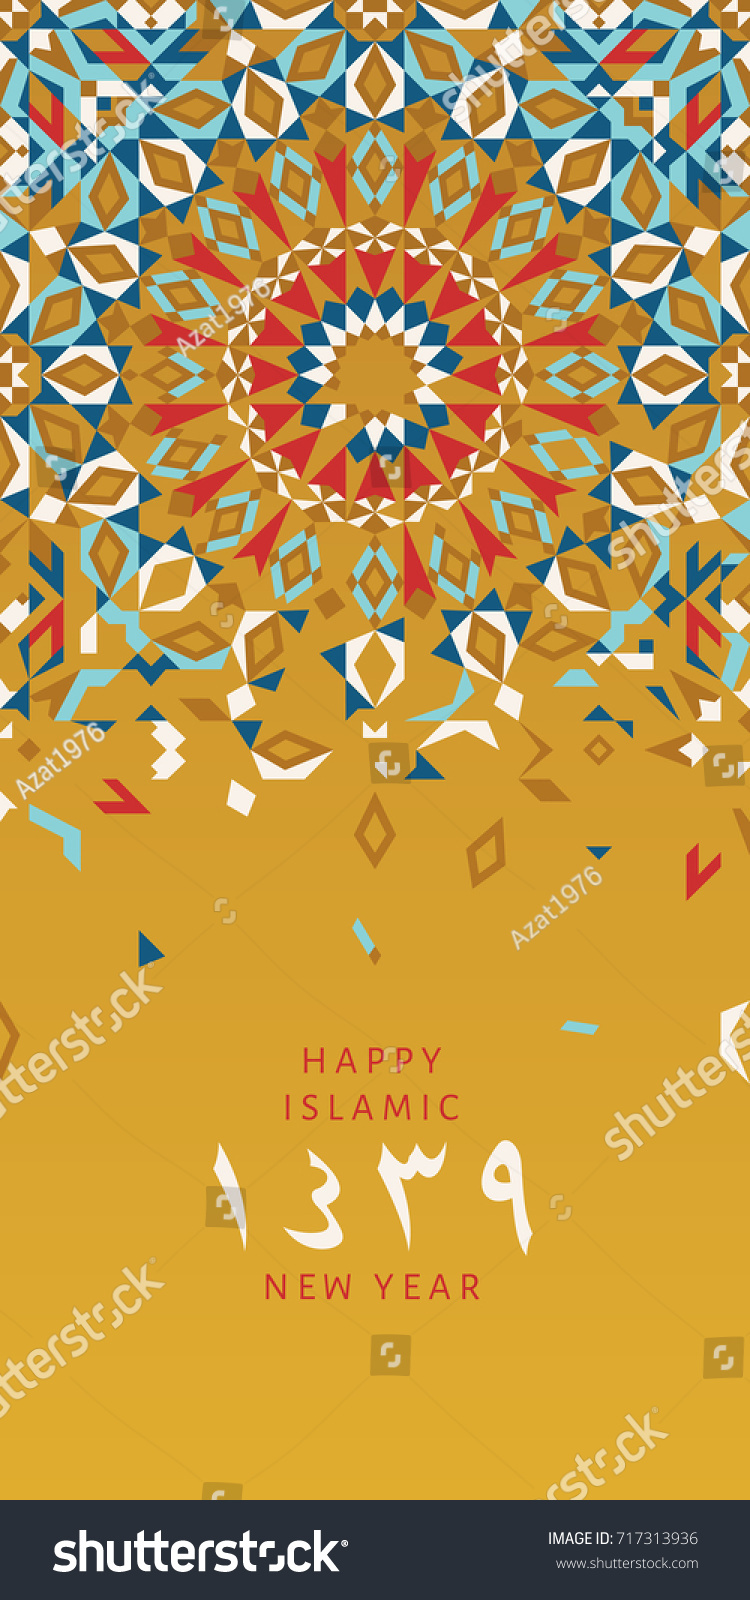 1439 Hijri Islamic New Year Happy Stock Vector 717313936 Shutterstock